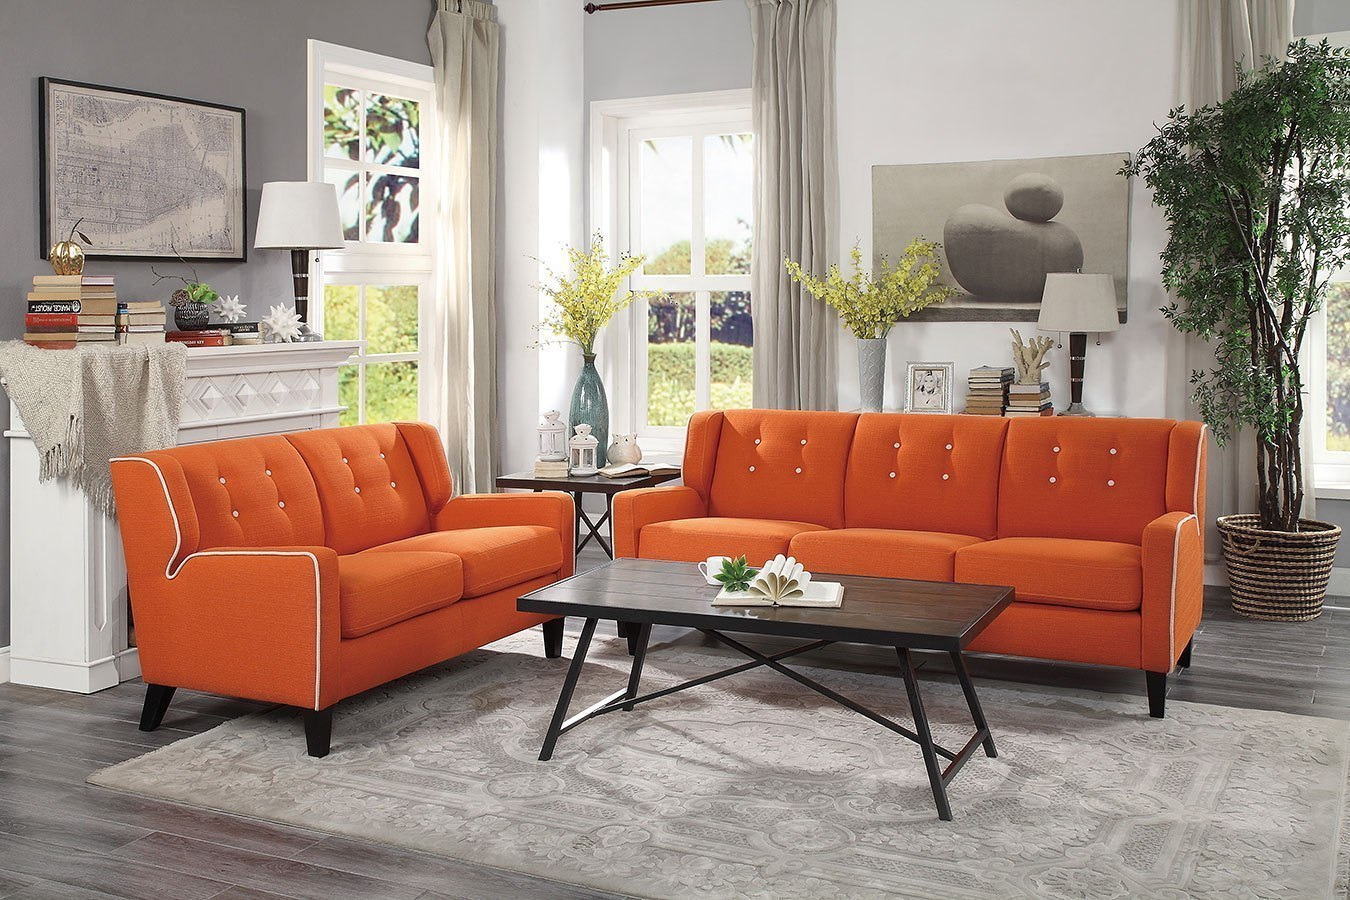 amazing orange white sofa living room furniture set | Roweena Living Room Set (Orange) by Homelegance ...